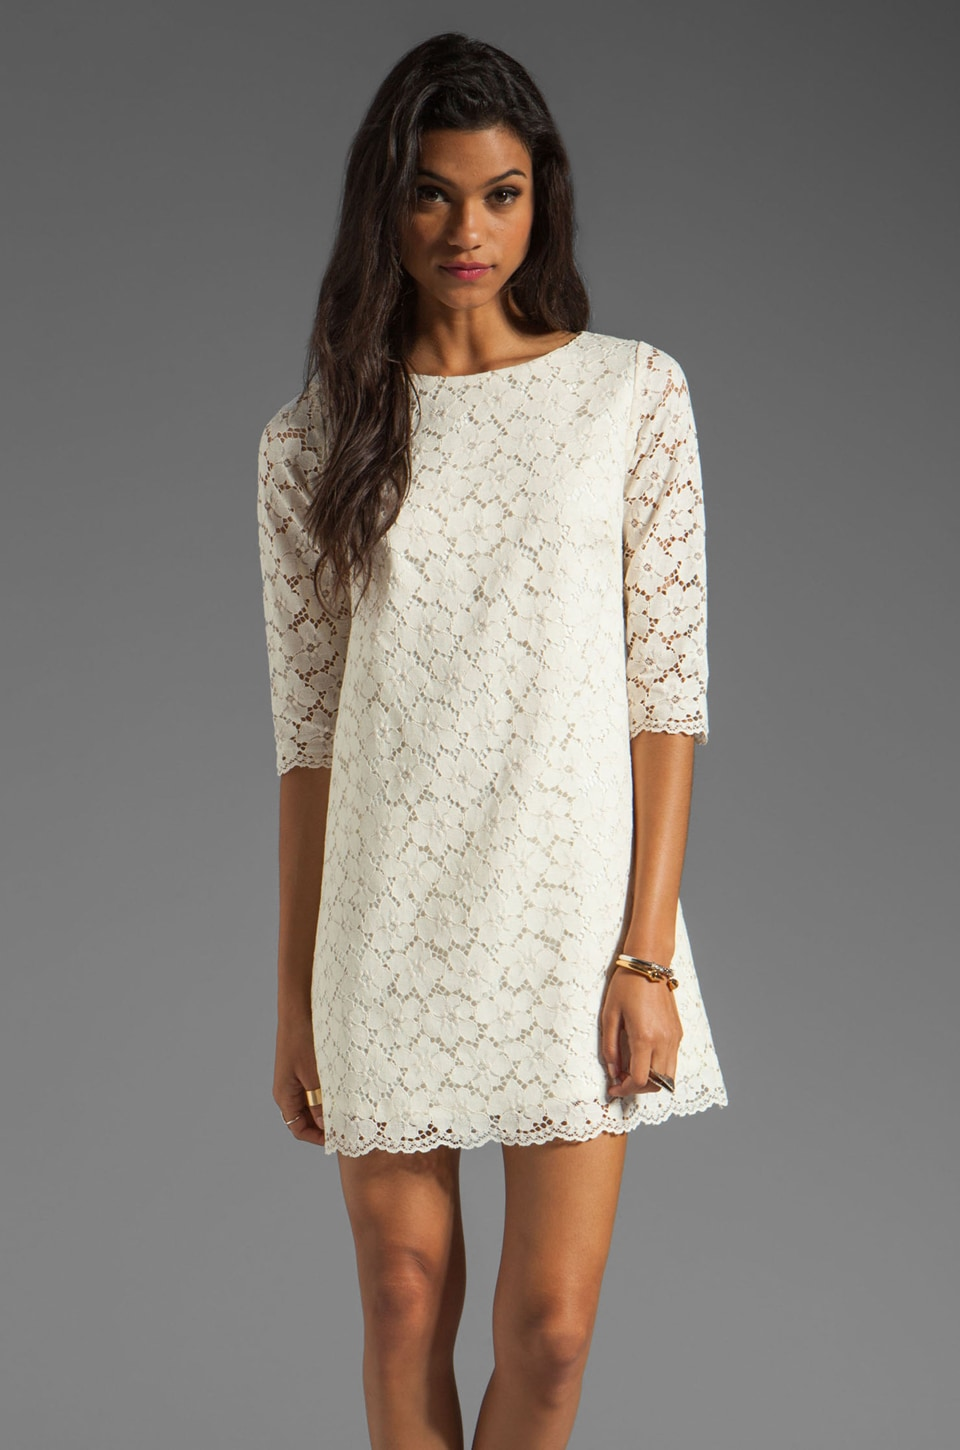 Shoshanna Lace Constance Shift Dress in Ivory